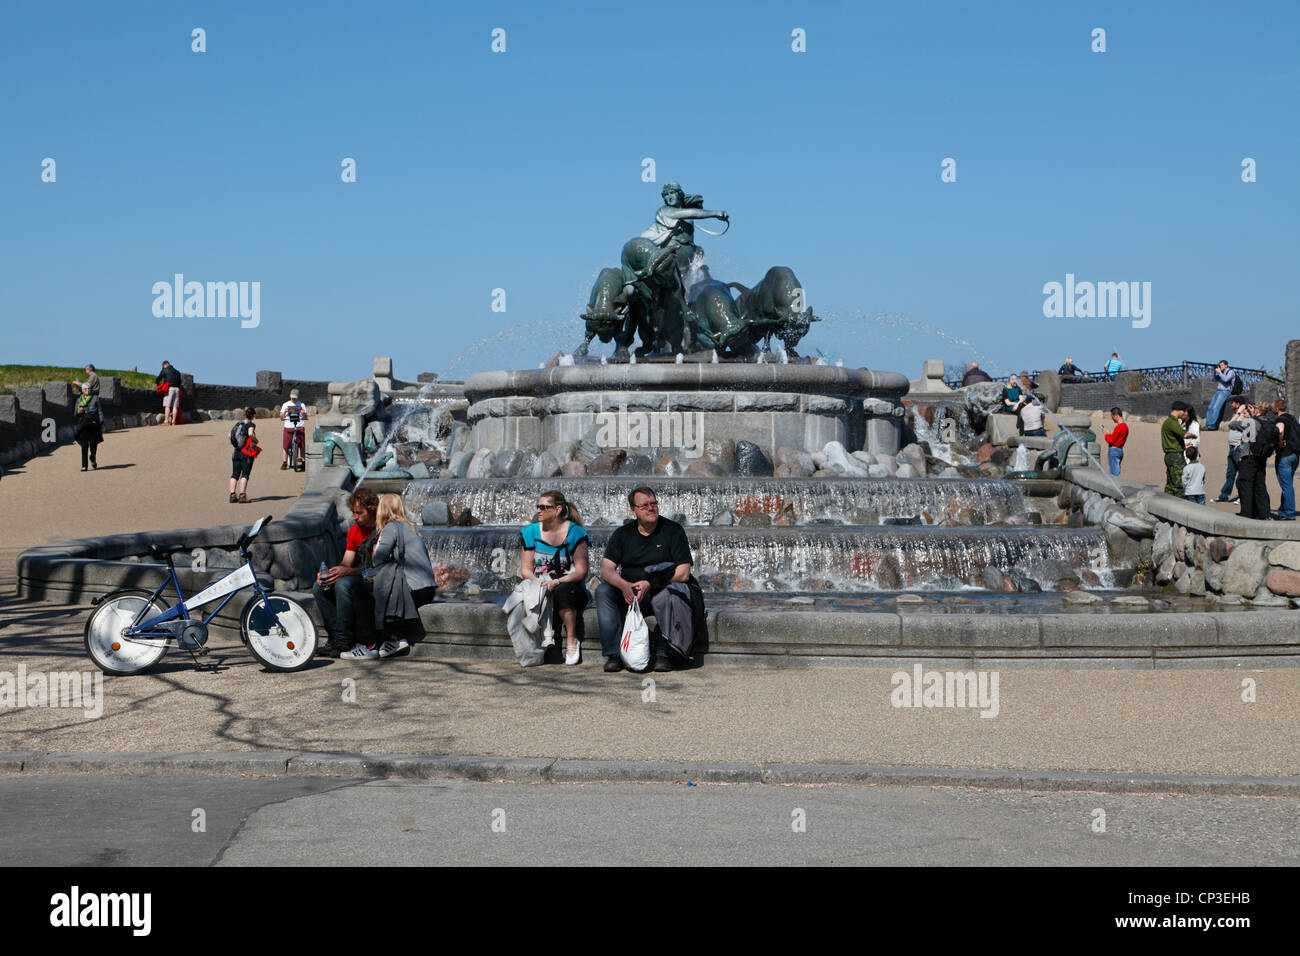 The Gefion Fountain (Gefionspringvandet) on the harbour front at the Langeliniepark next to the citadel Kastellet - Stock Image